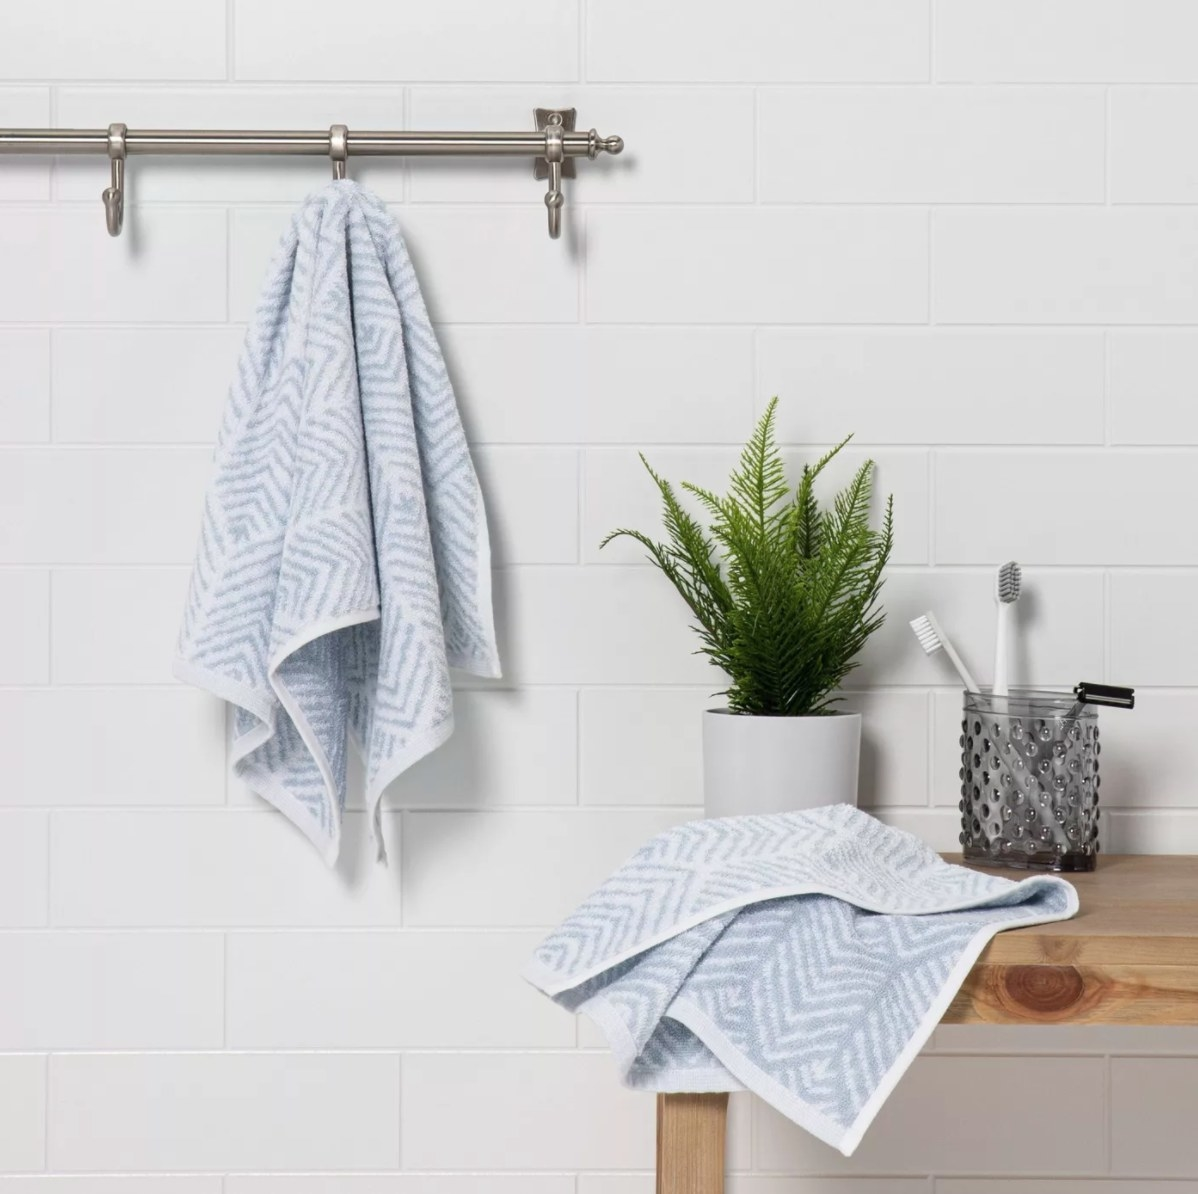 The two-pack of chevron hand towels in light blue in a bathroom